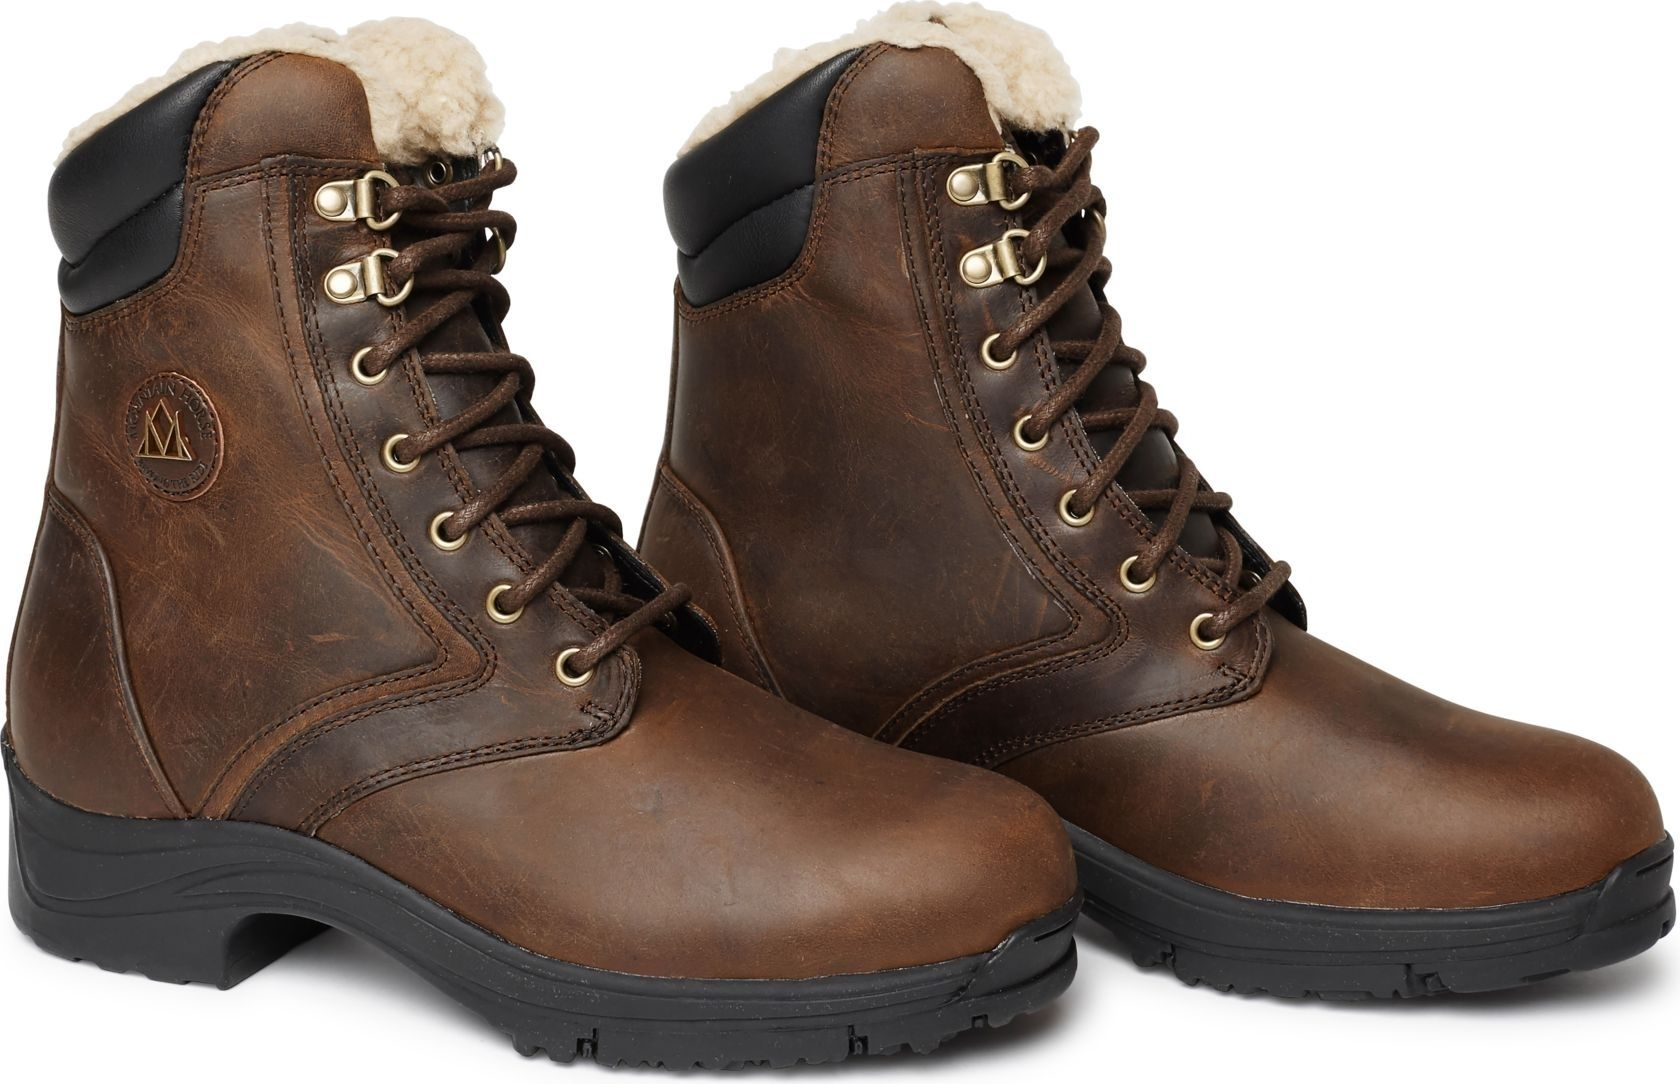 Mountain Horse Snowy River Lace Boots 1